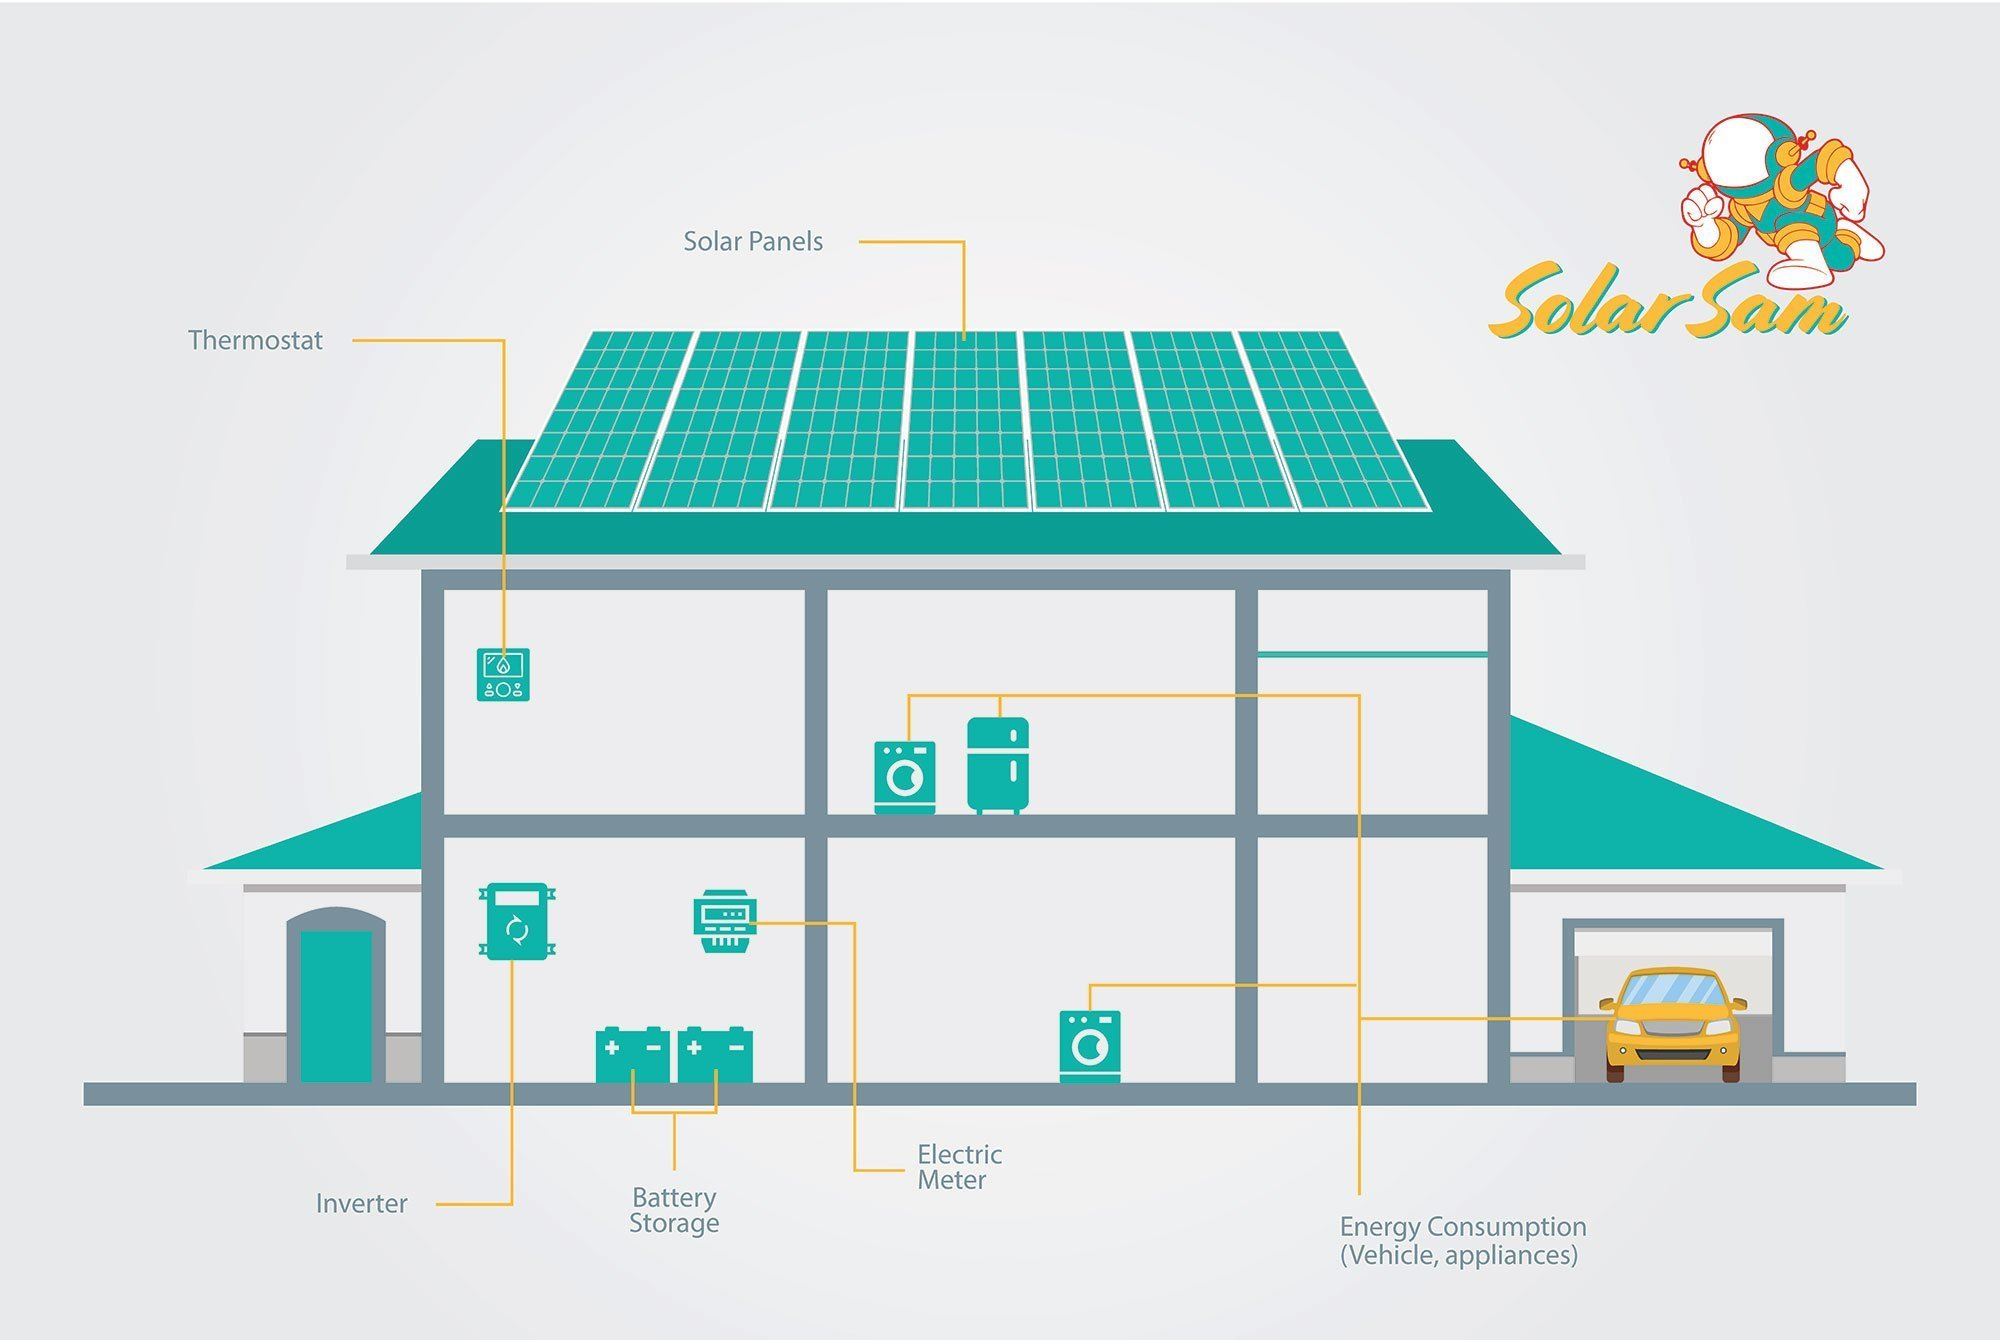 Solar Sam Behind-the-Meter Infographic Solar Panels Electric Energy Power Inverter Battery Storage Electricity Meter Vehicles Appliances